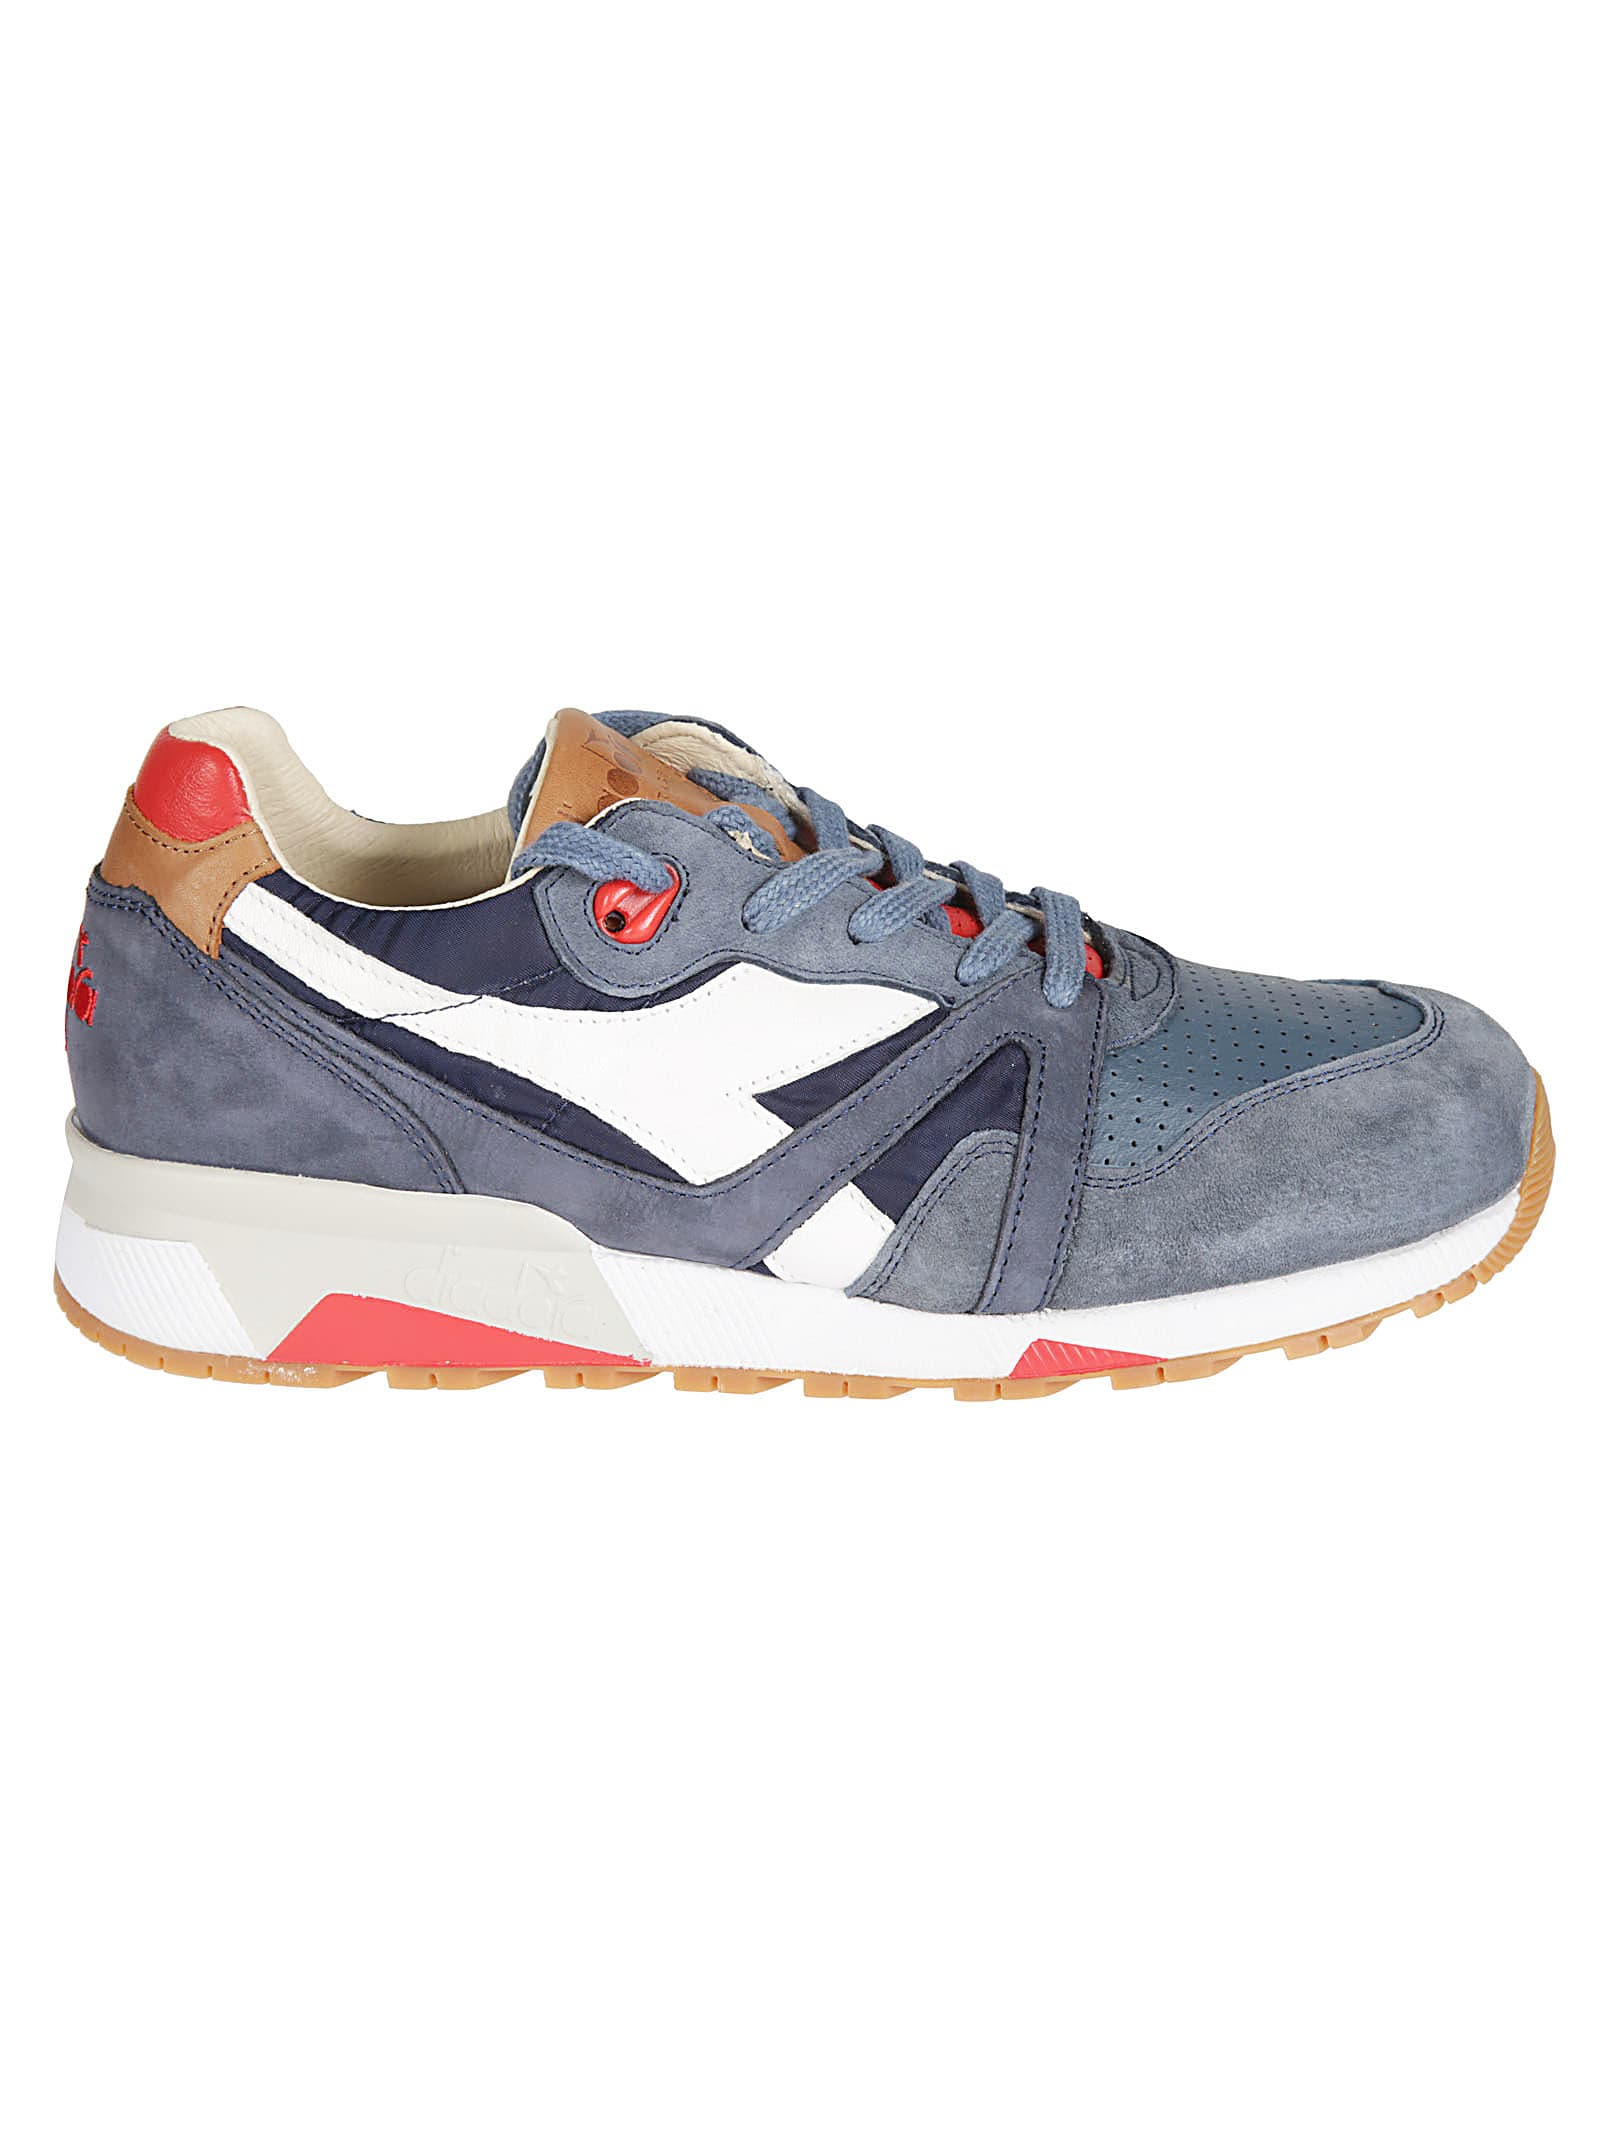 best cheap 9a747 9a726 Best price on the market at italist | Diadora Heritage Diadora Heritage  N9000 Sneakers